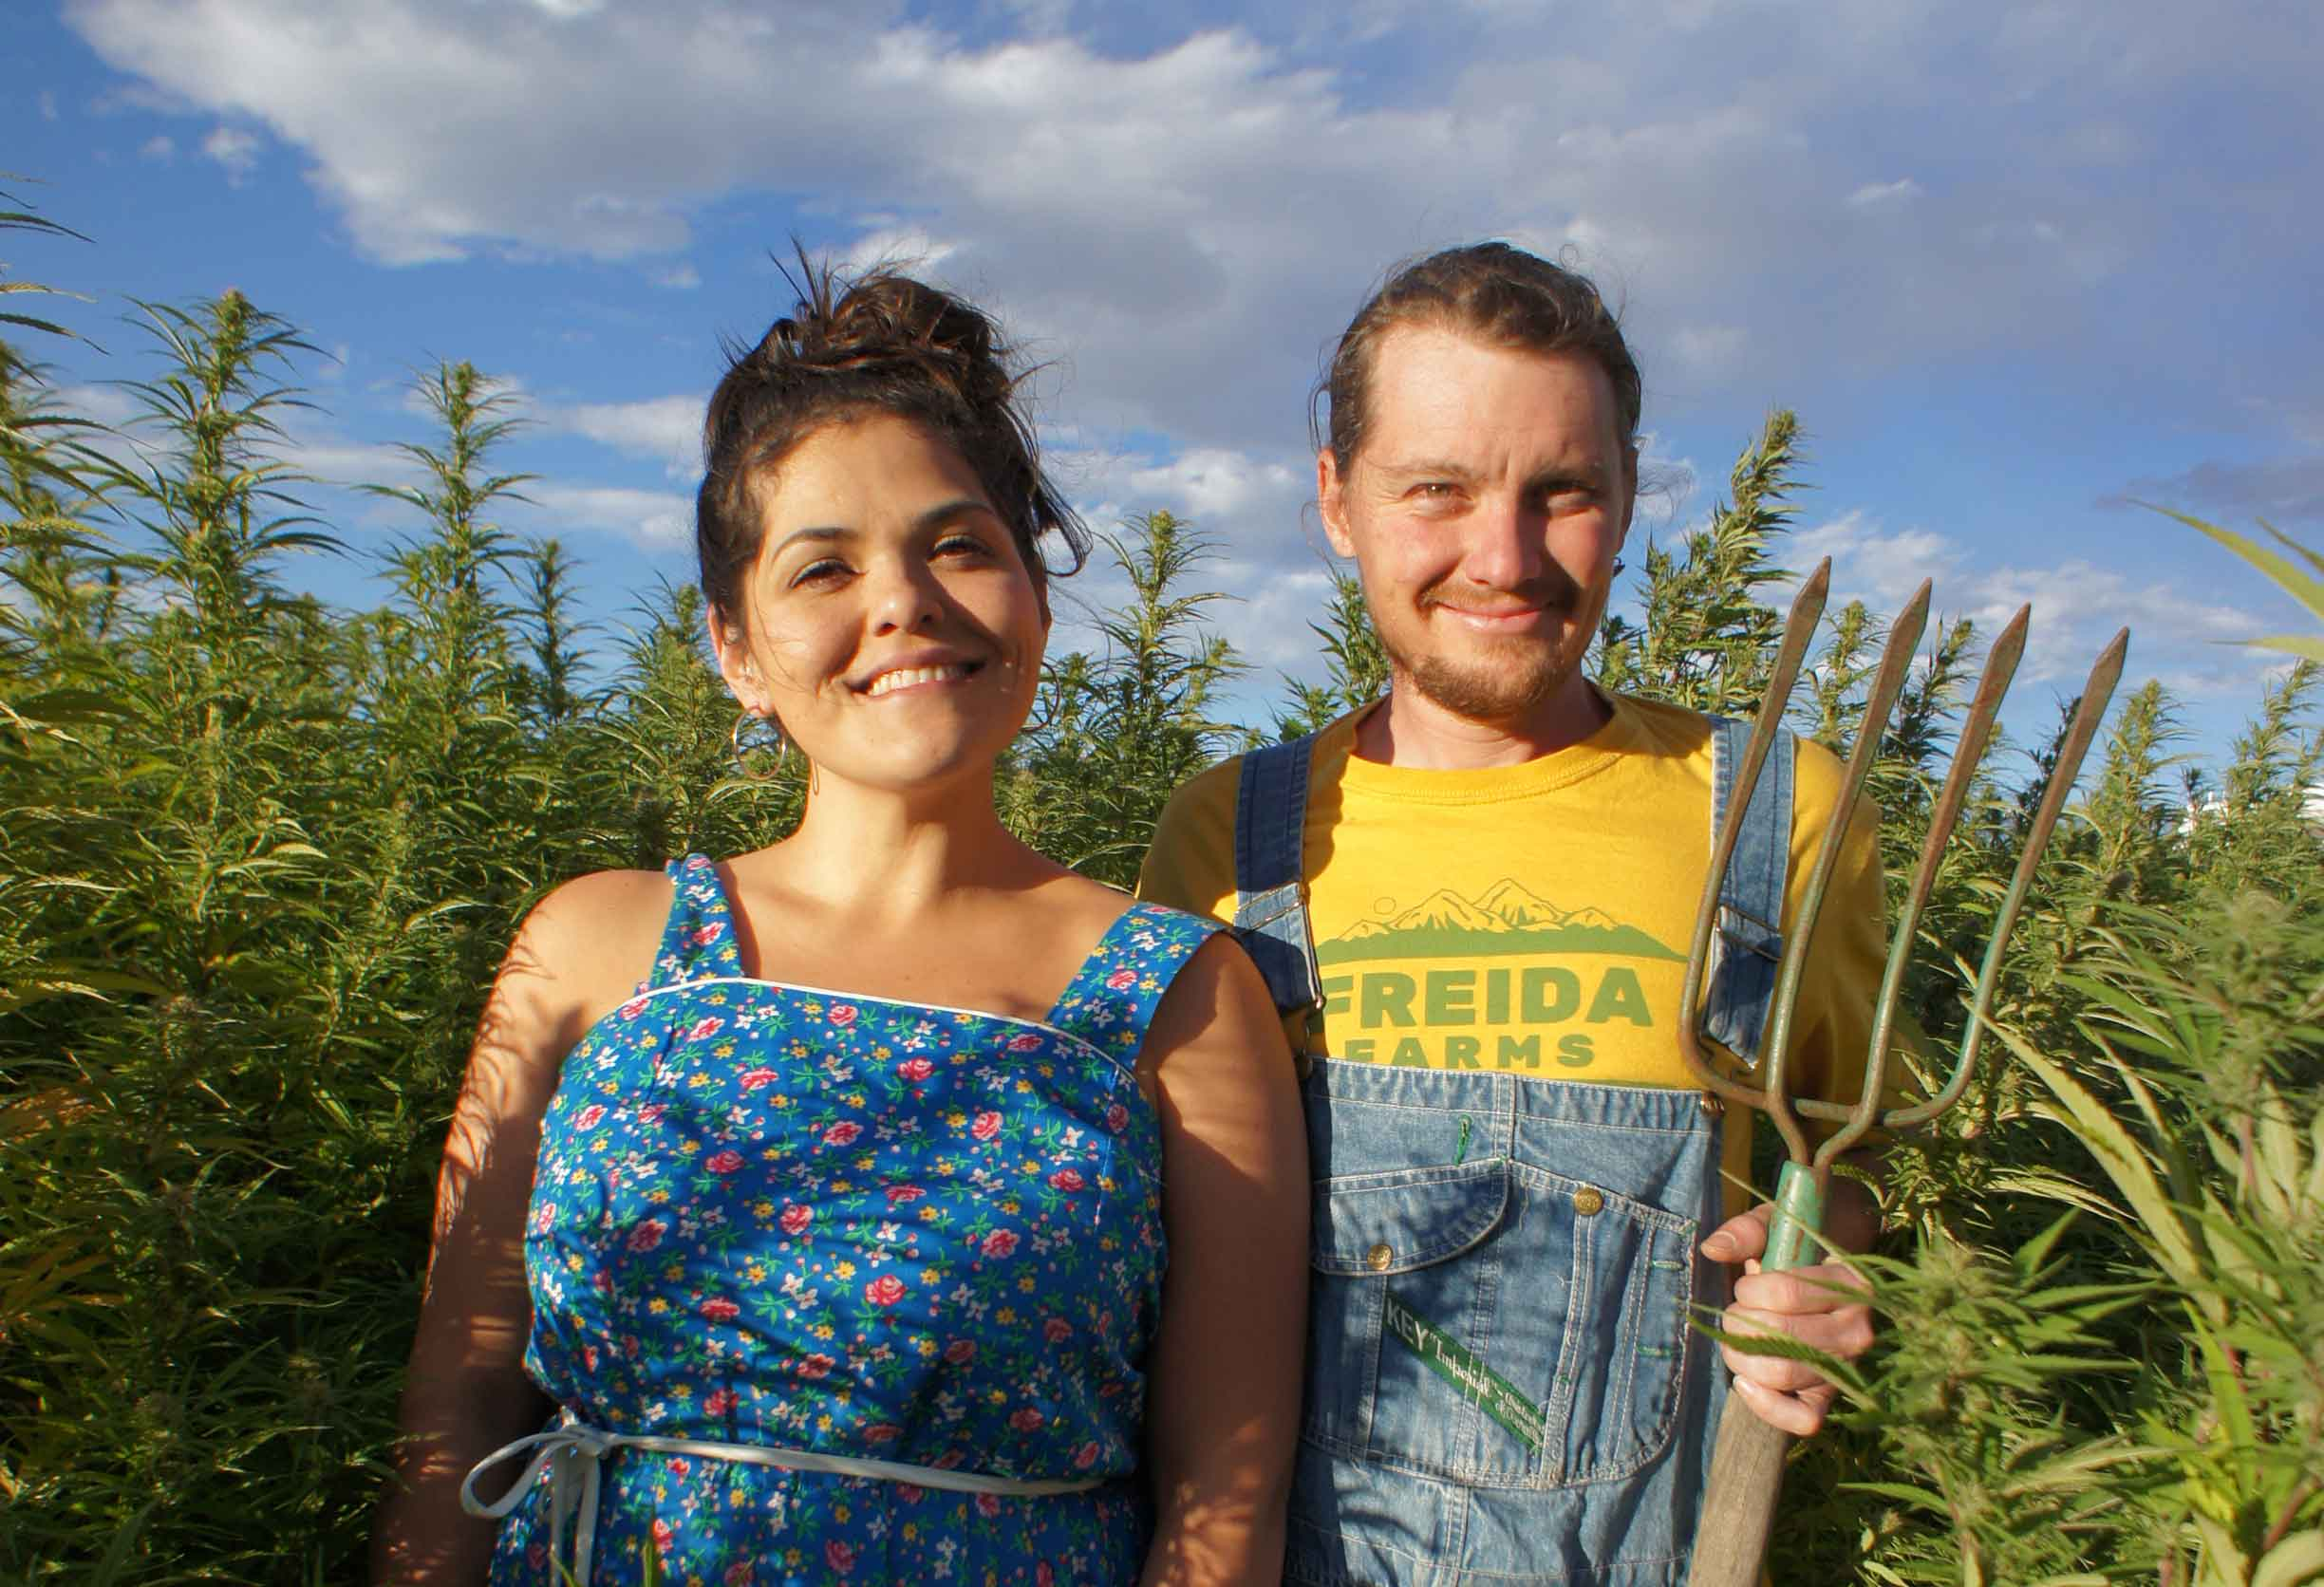 https://freidafarms.com/wp-content/uploads/Freida-Farms-Hemp-owner-header.jpg